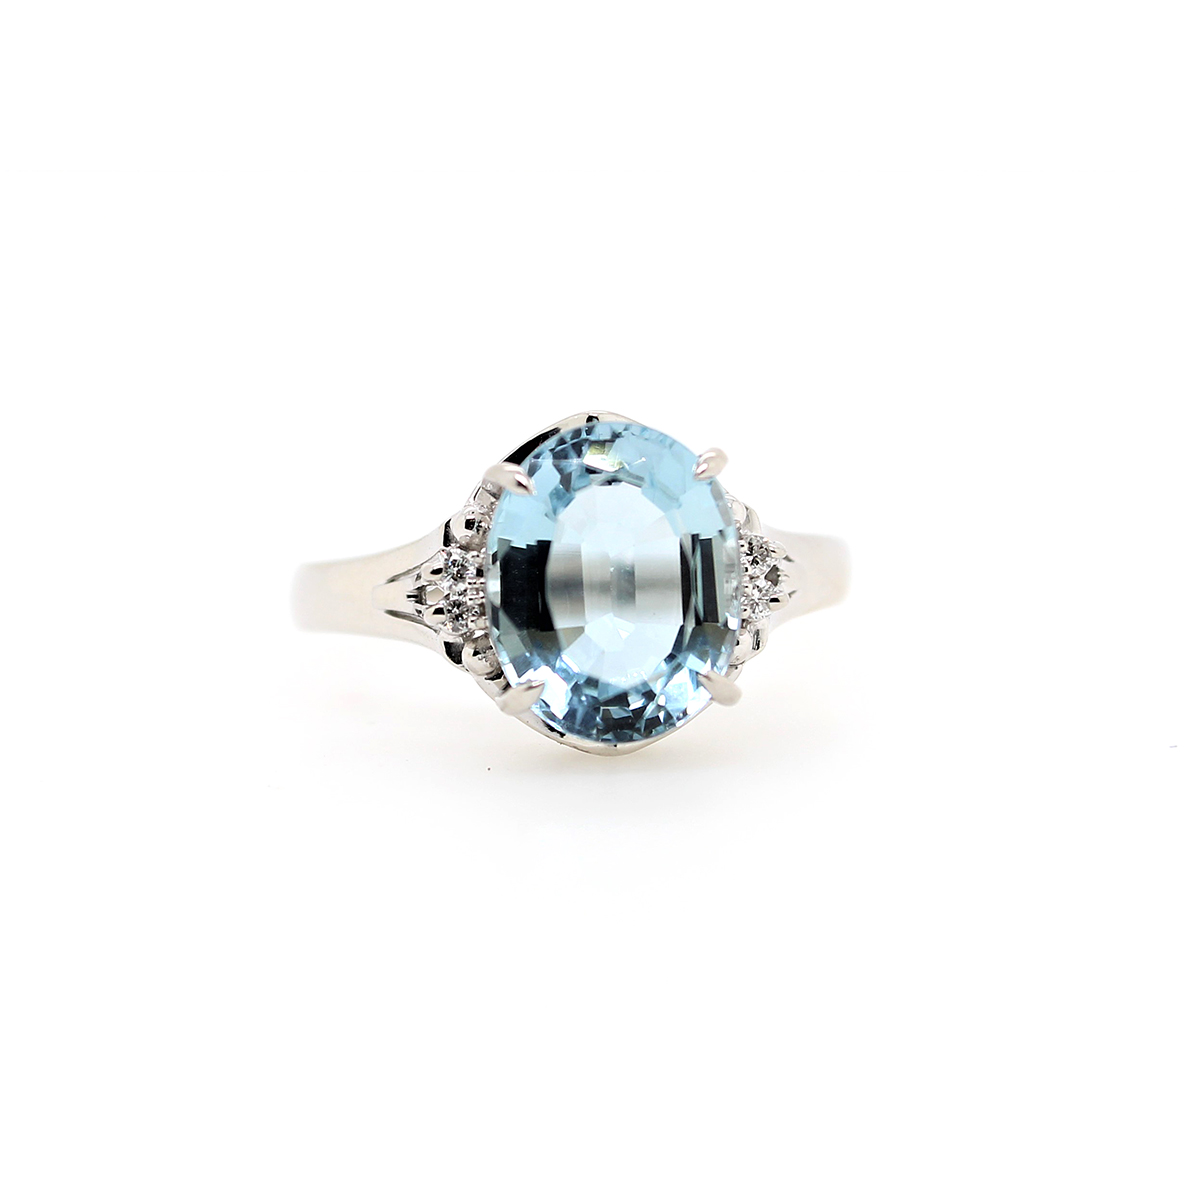 Vintage Platinum Aquamarine and Diamond Ring